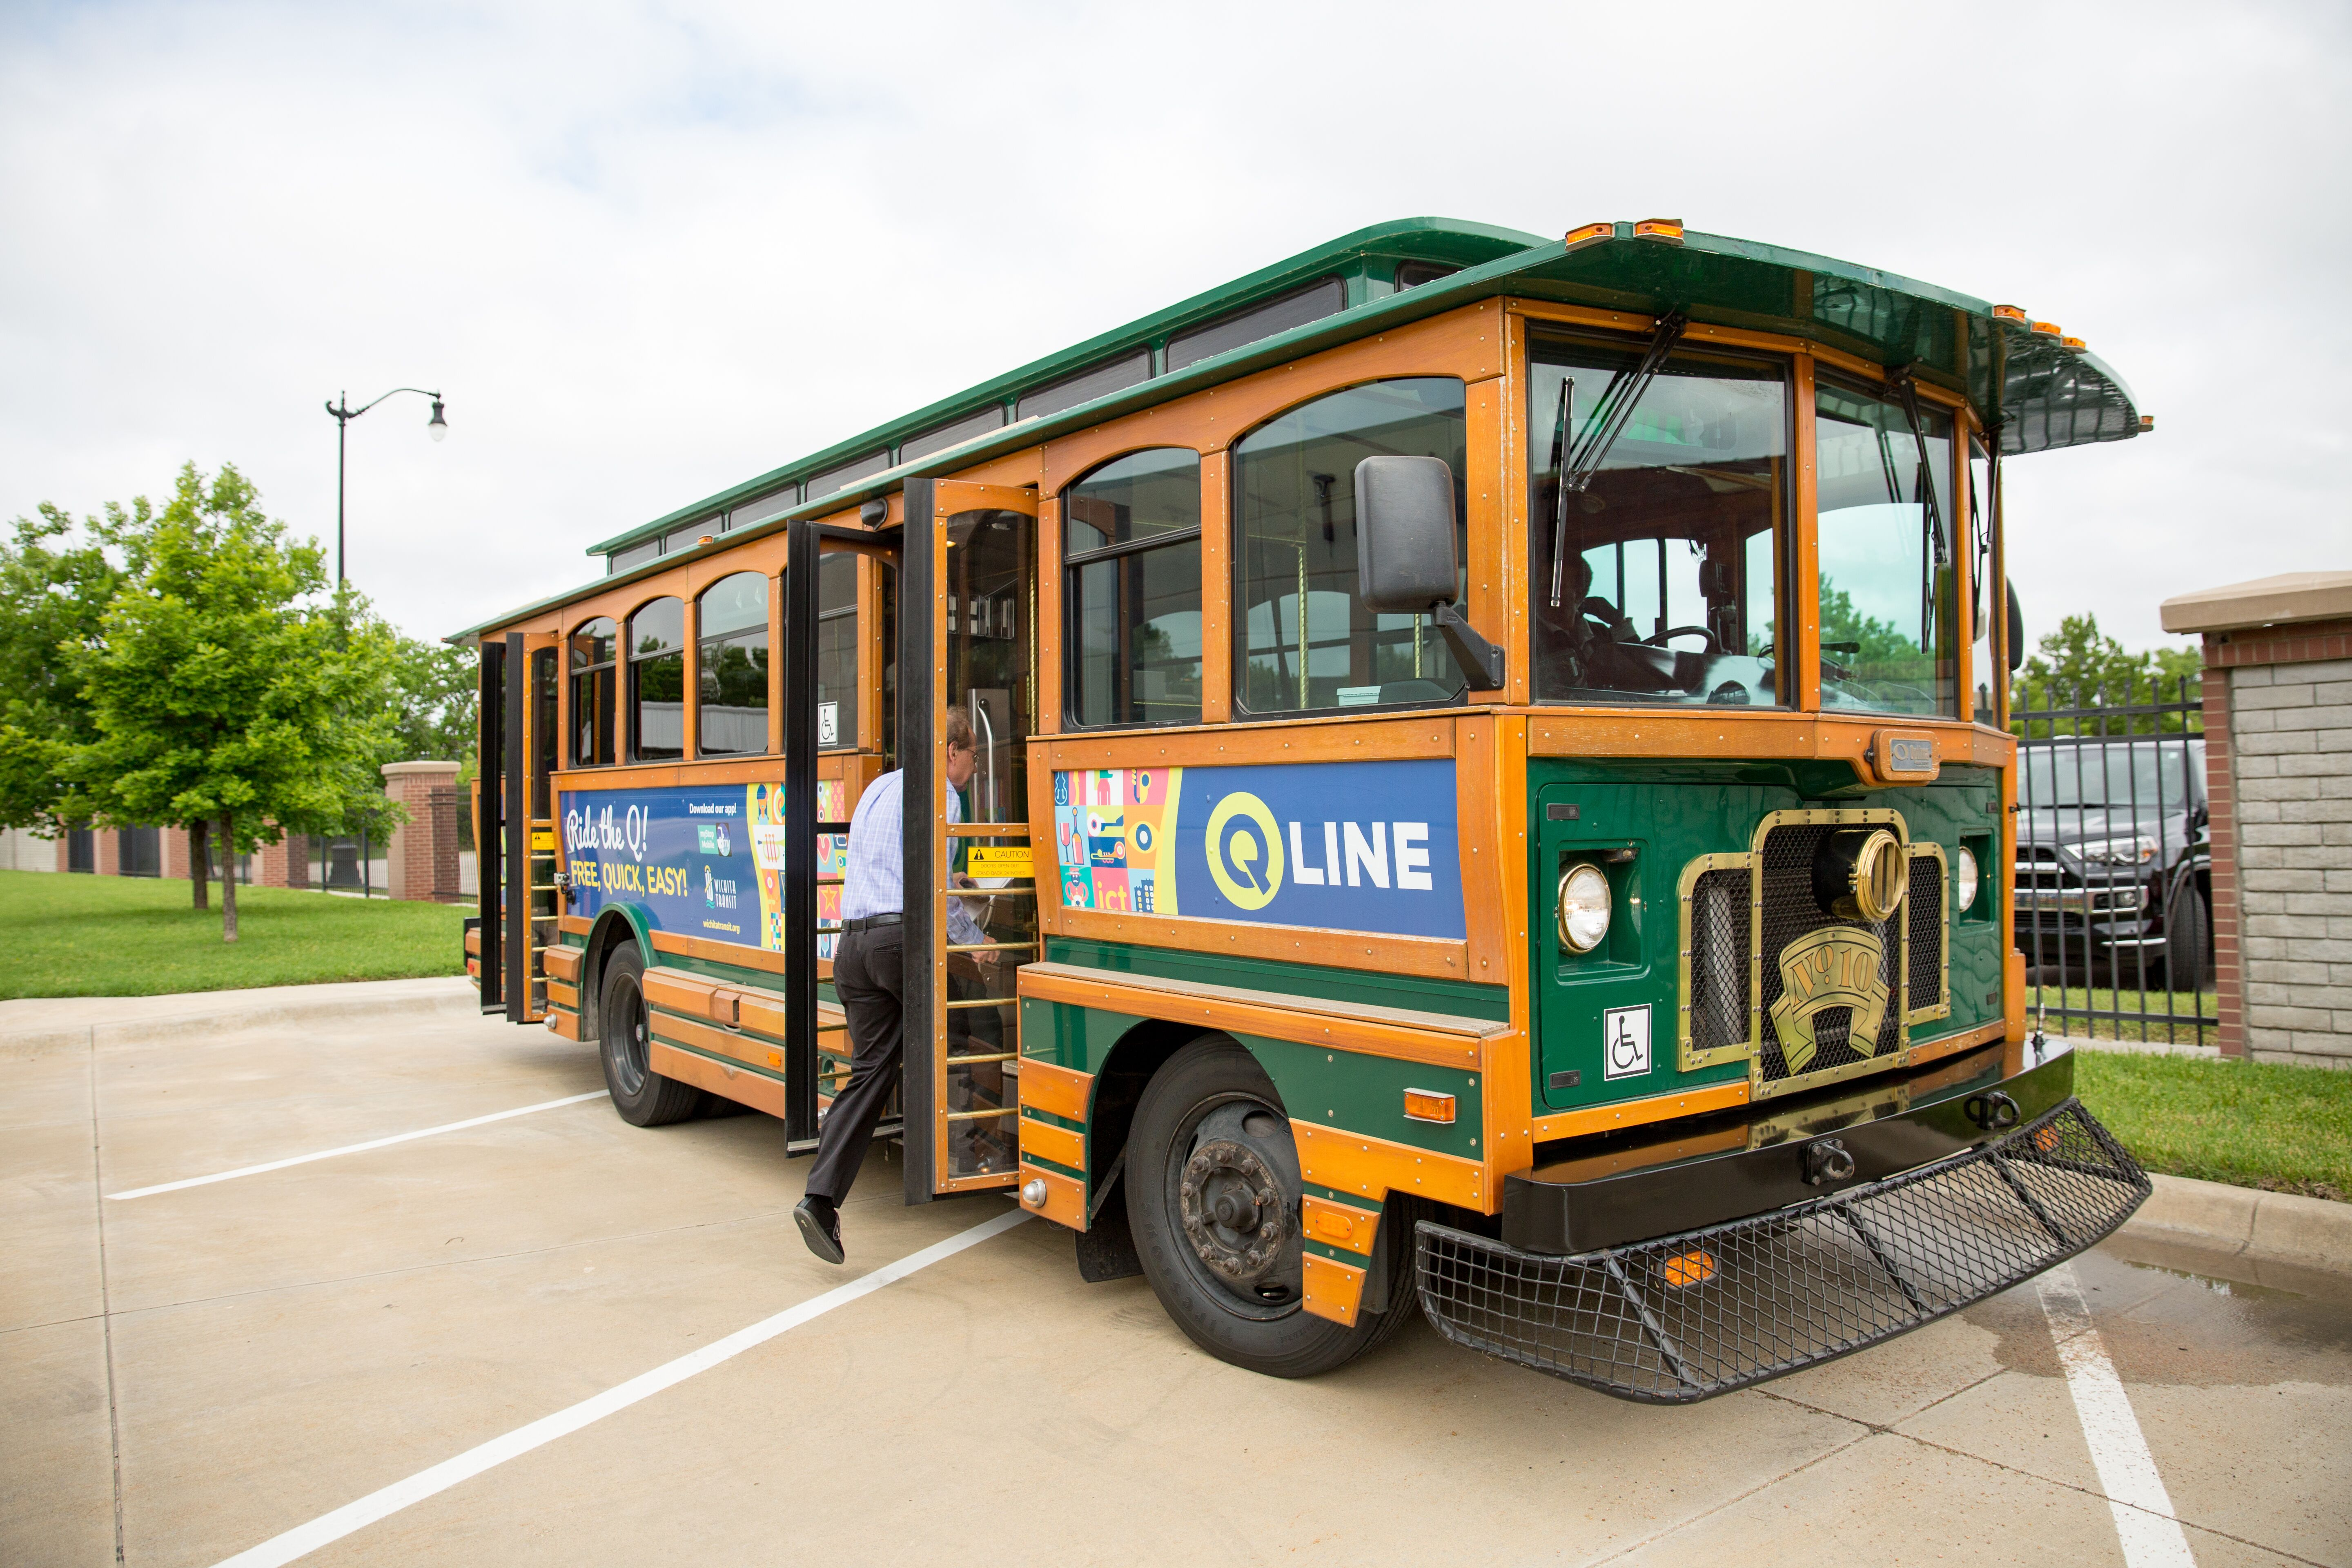 A man boards the Q-Line - a free trolley in Wichita that navigates through downtown